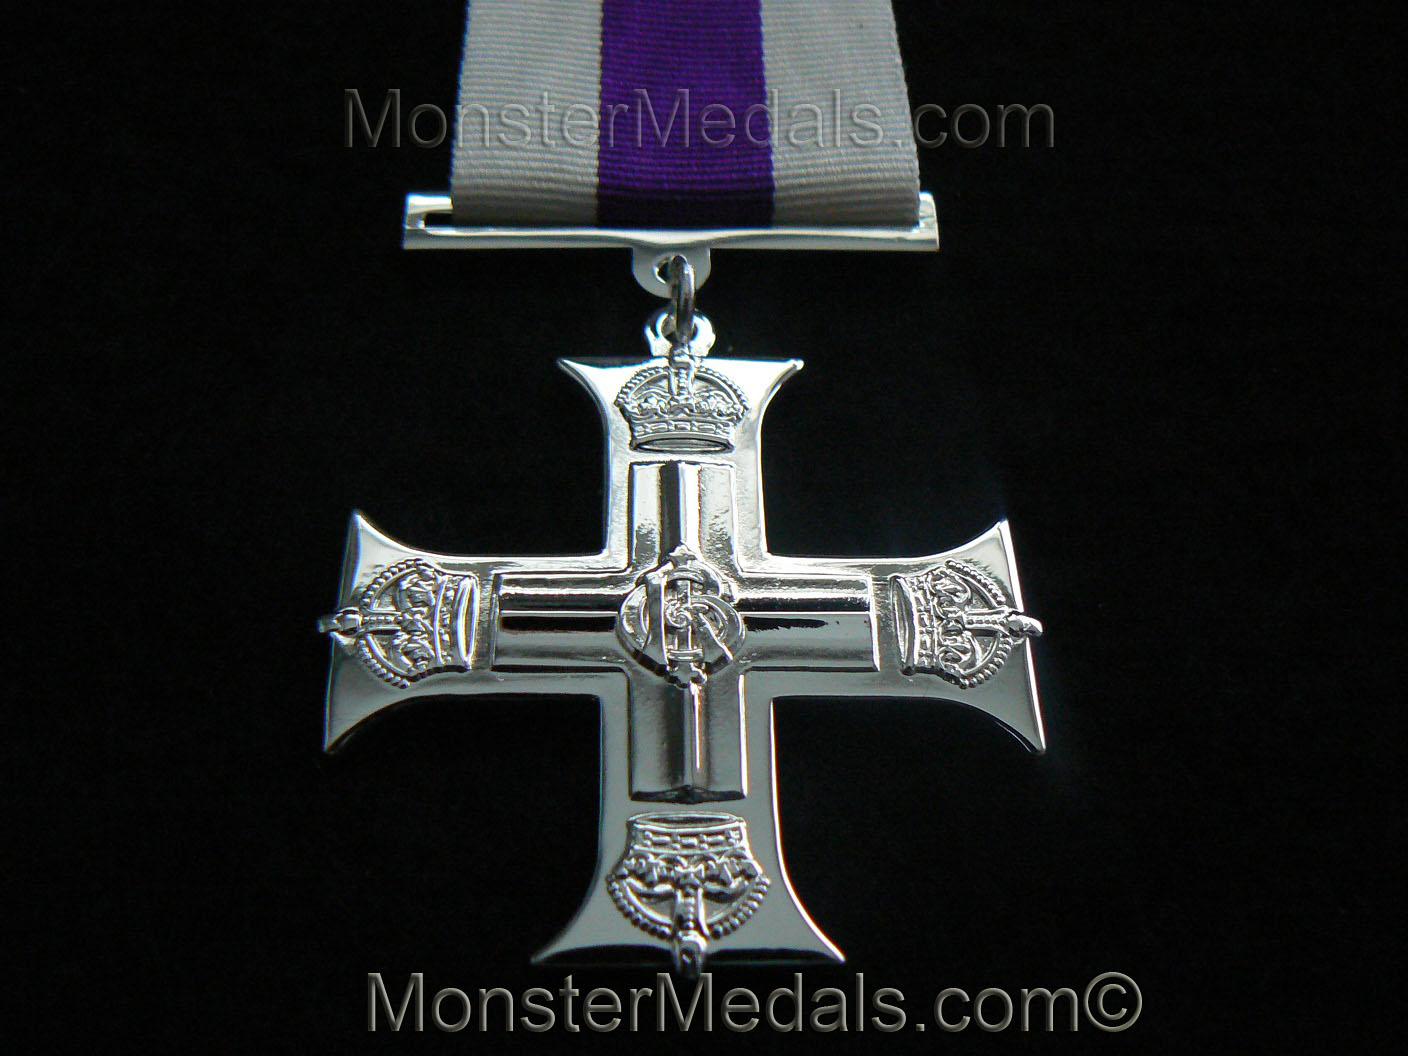 MILITARY CROSS FULL SIZE REPLACEMENT COPY MEDAL GV